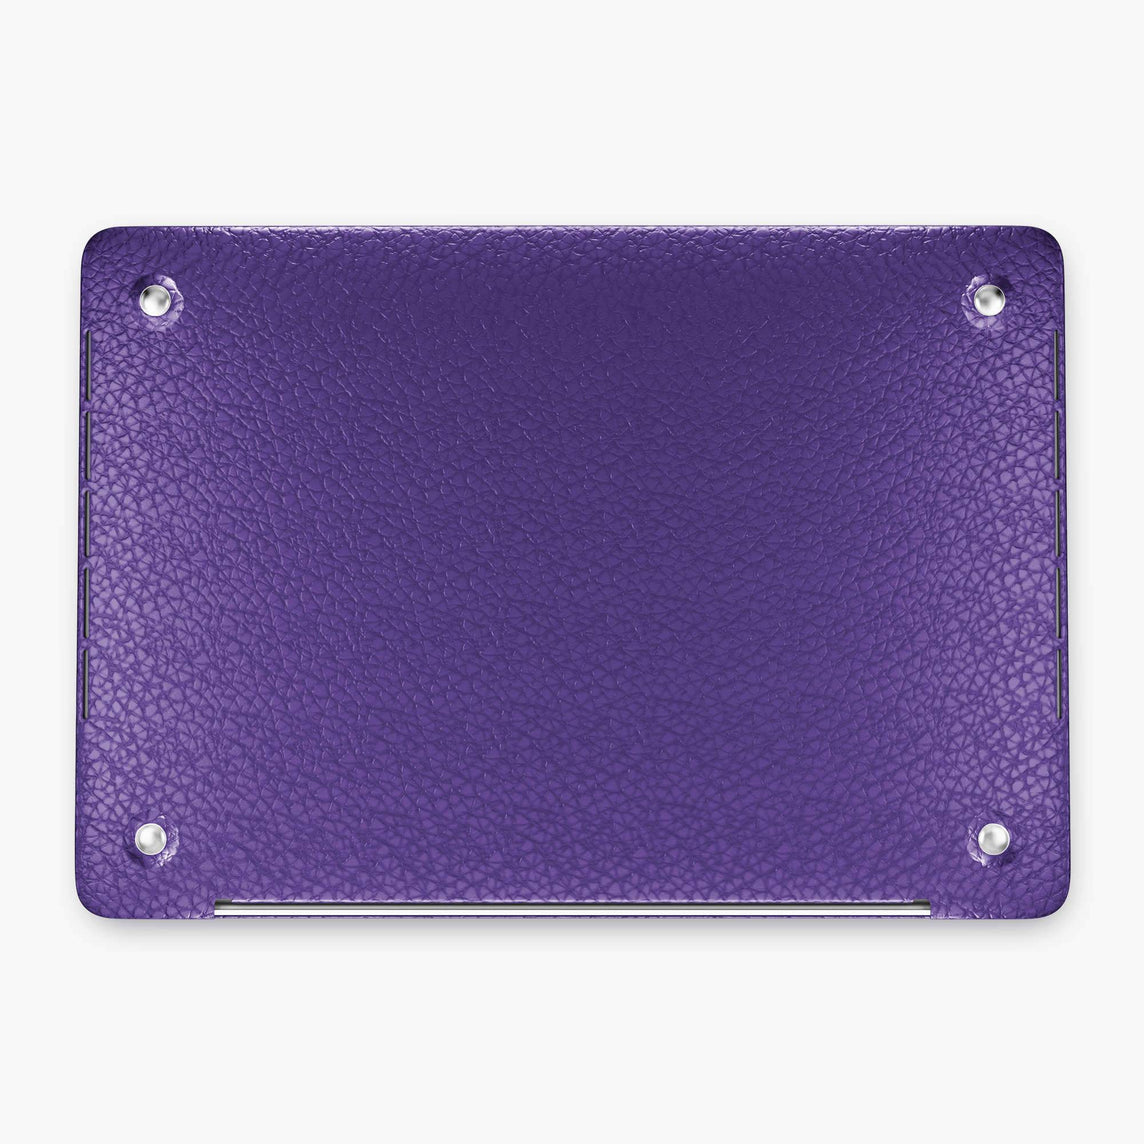 Calfskin Macbook Case Apple Mac Book 13'' Pro | Purple - Black